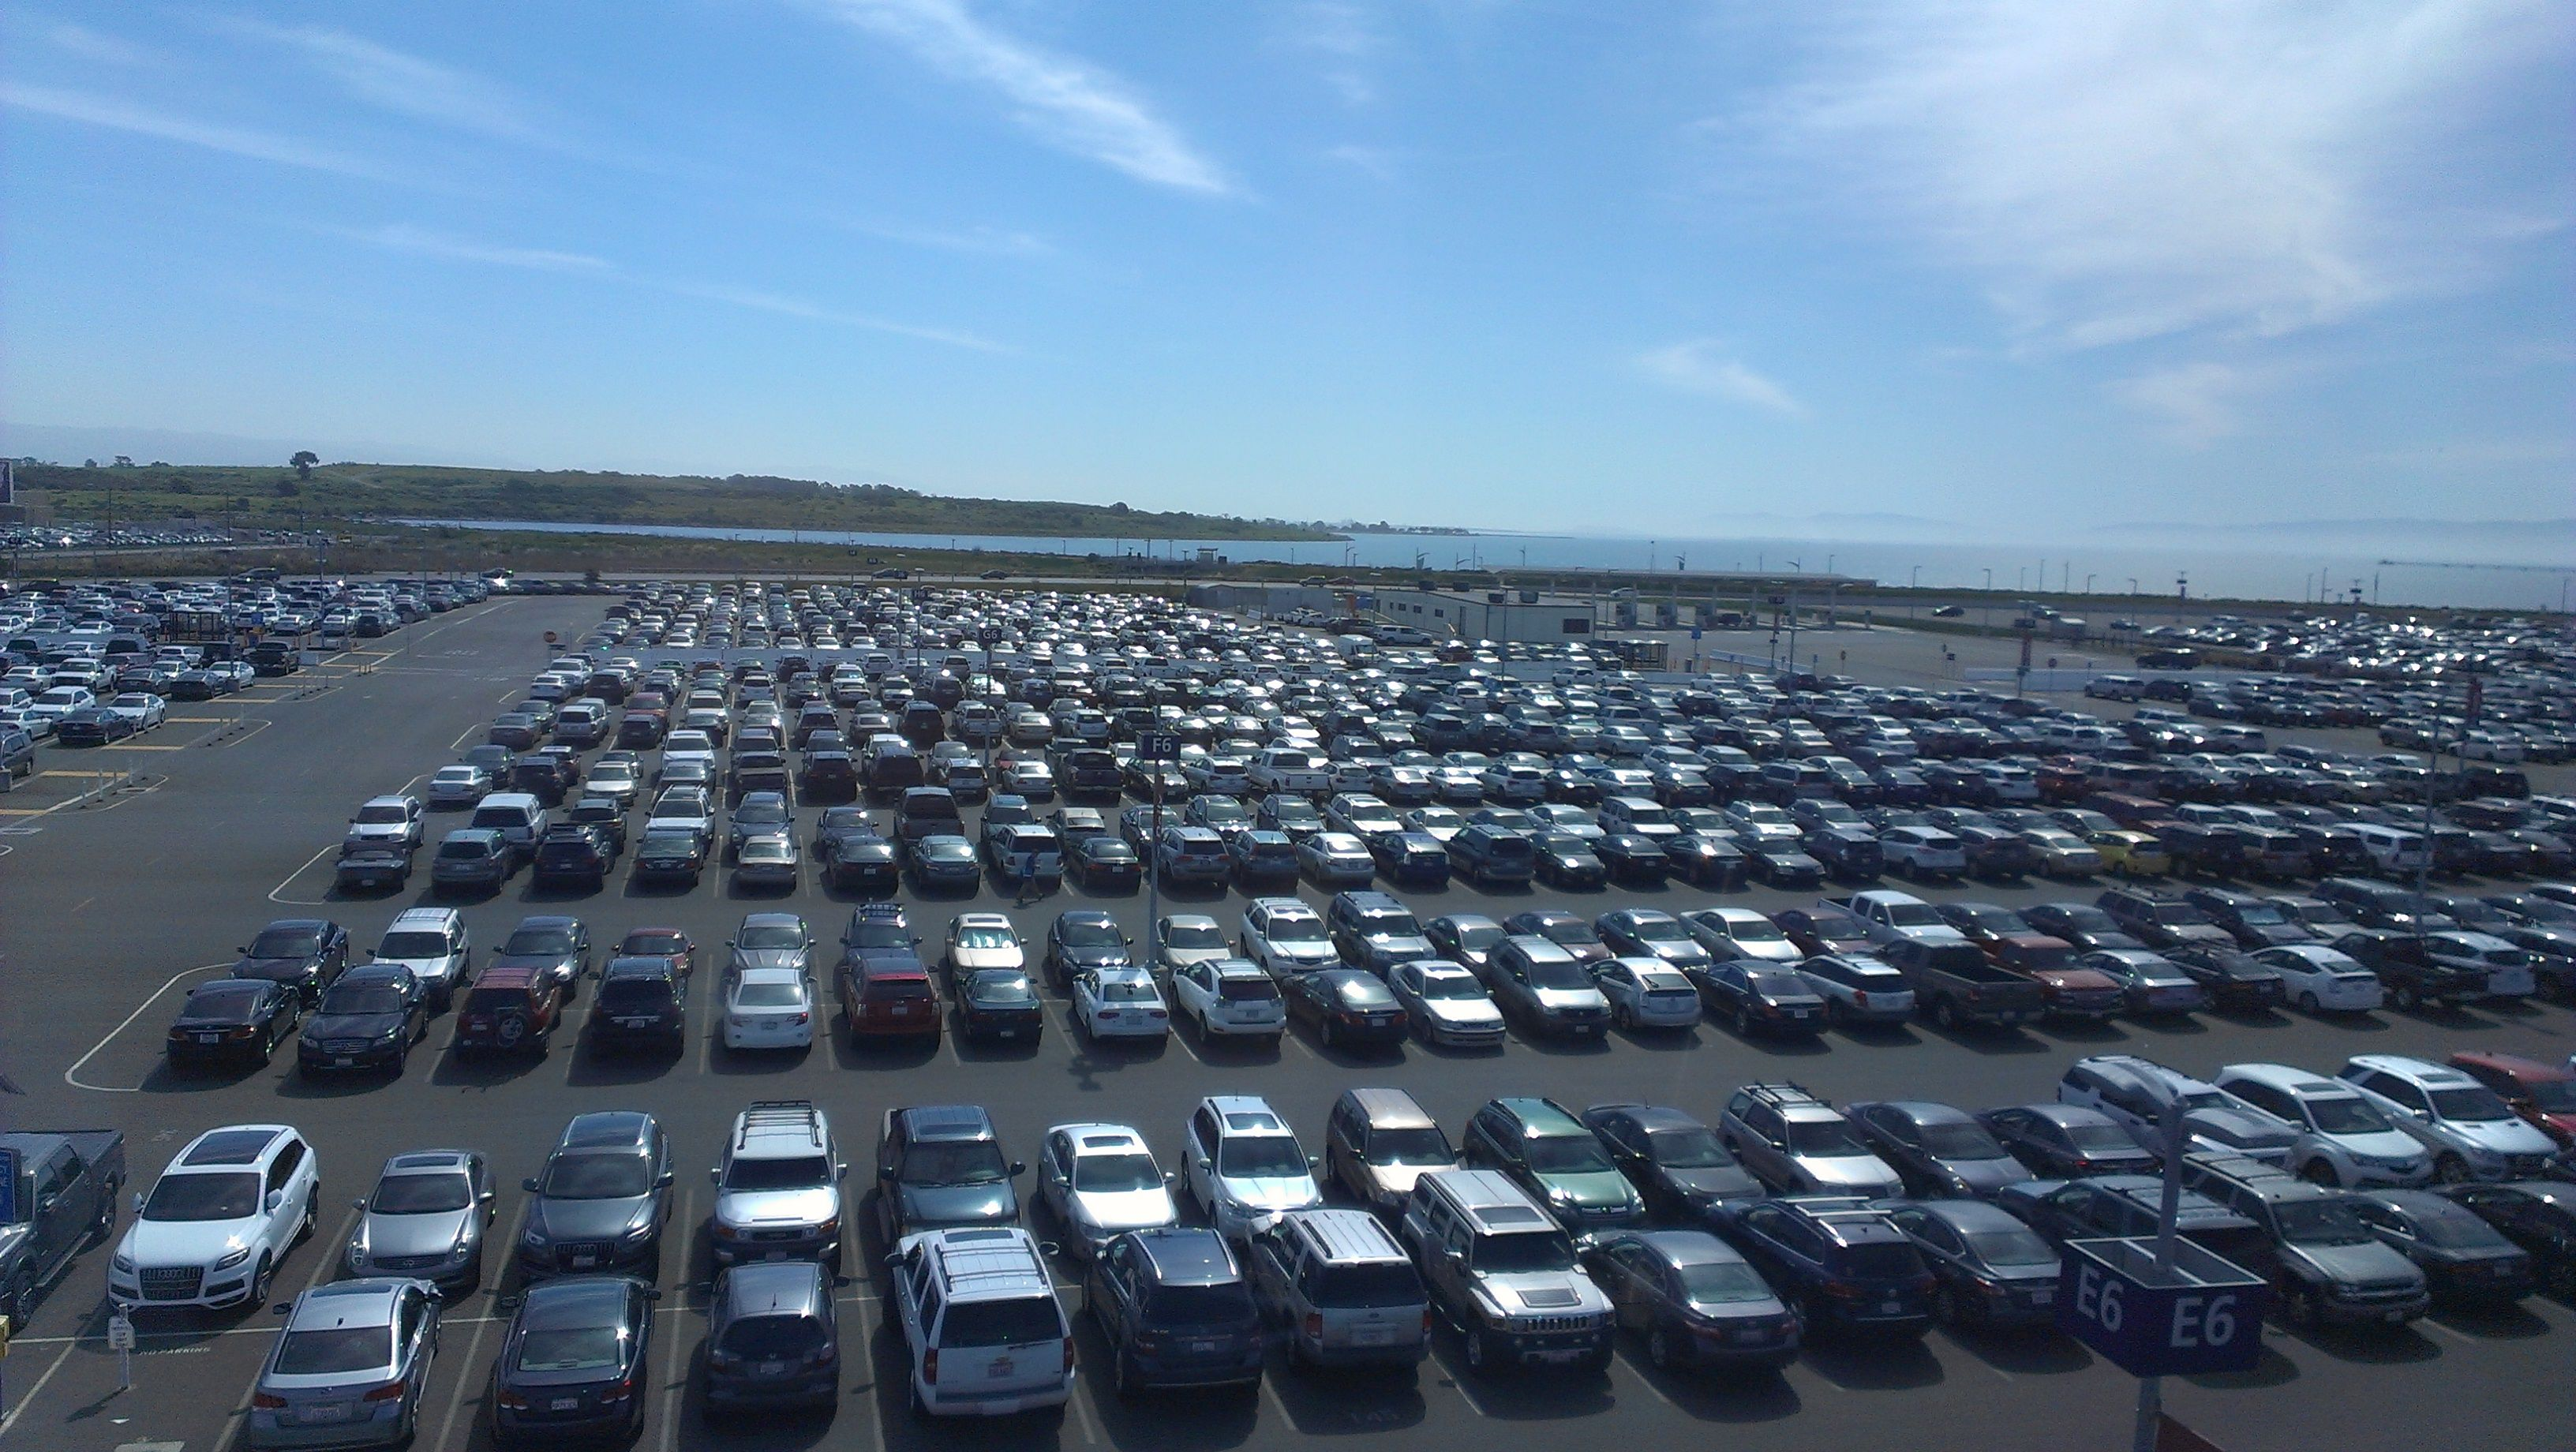 Get Secure And Reliable Car Parking At Affordable Rates By